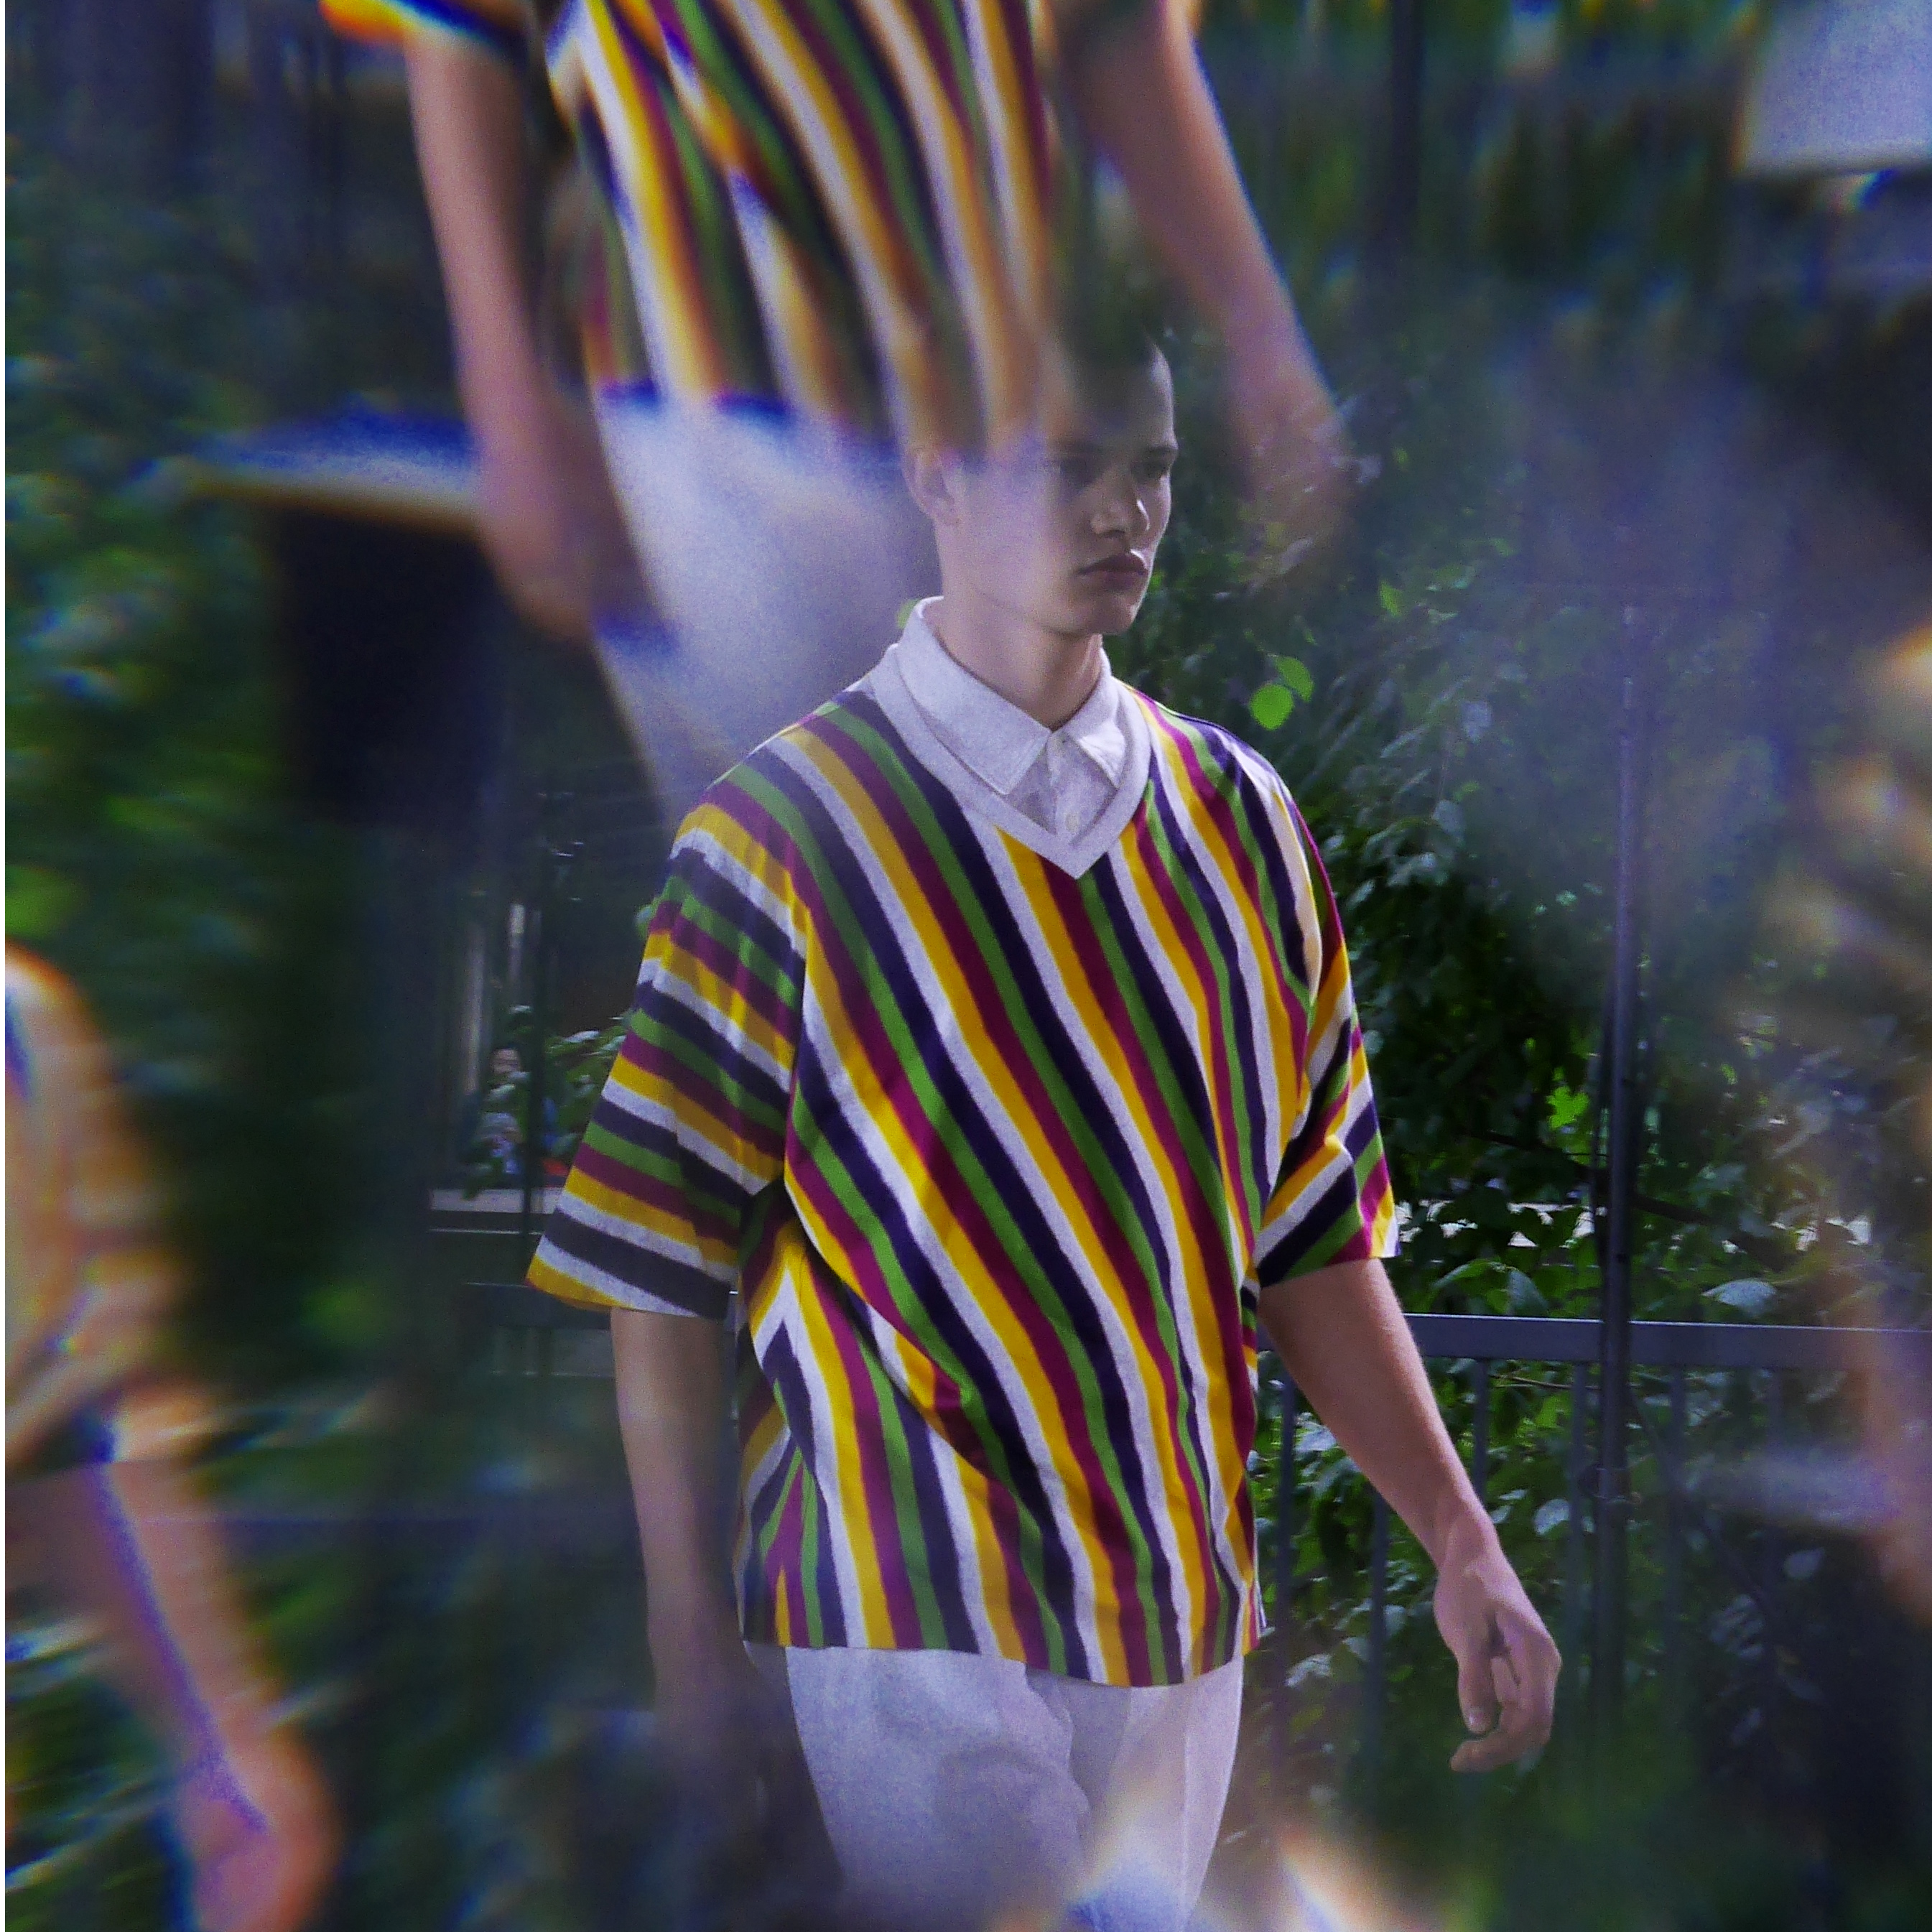 ISSEY MIYAKE MEN S/S 2018: A VISION BY FRANK PERRIN